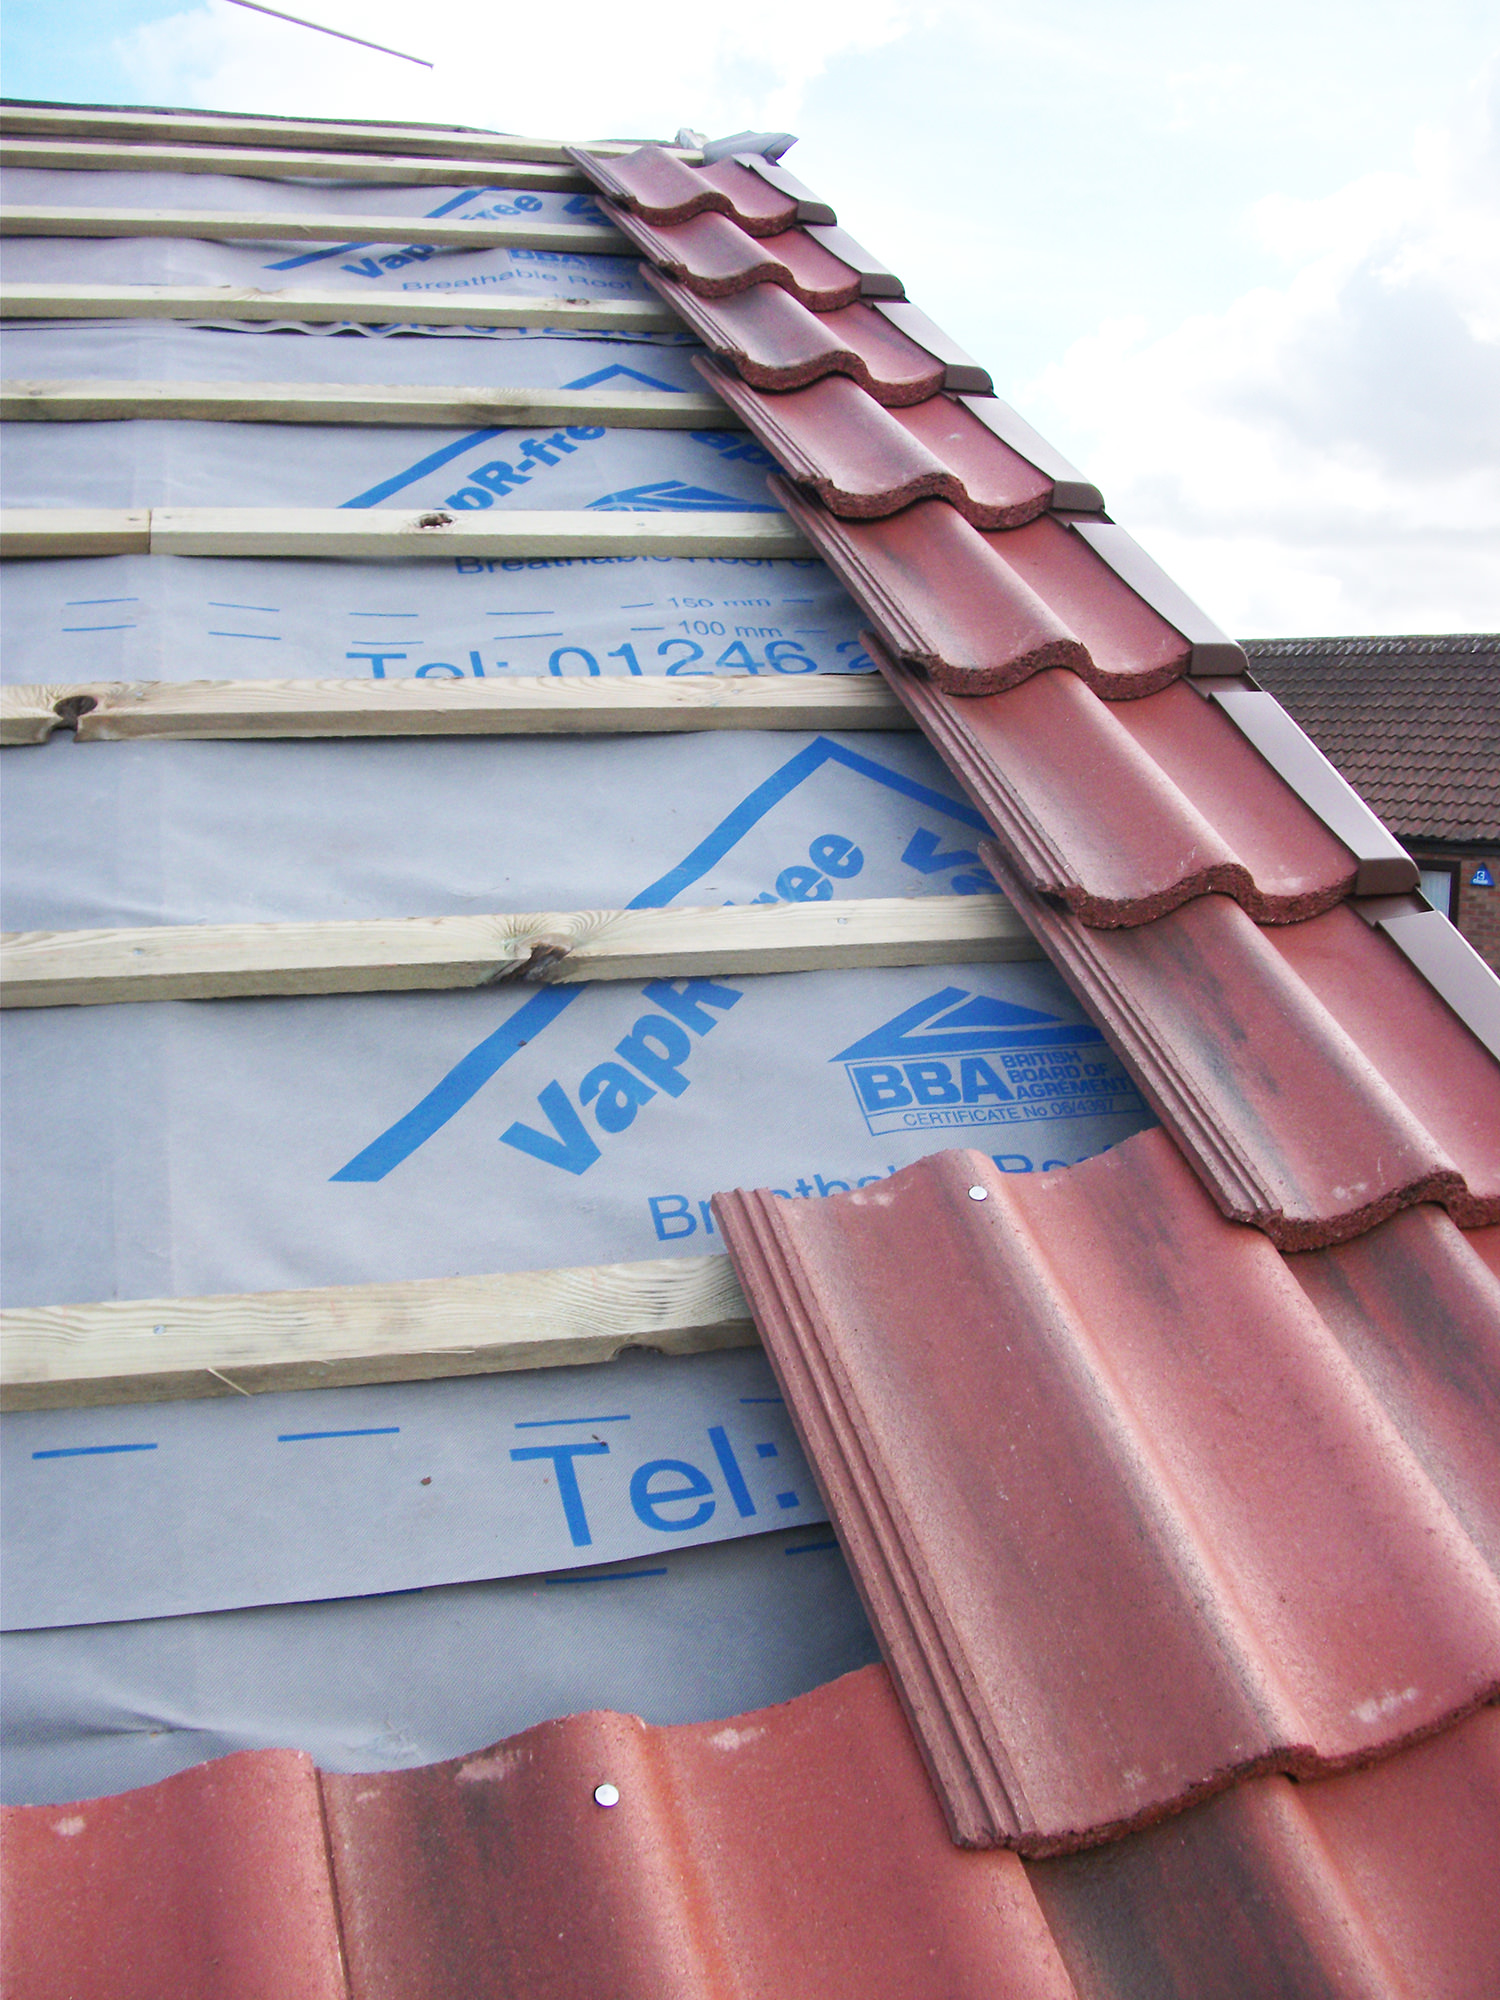 Re-roofing - new roof West Design and Build of Hedon01.JPG